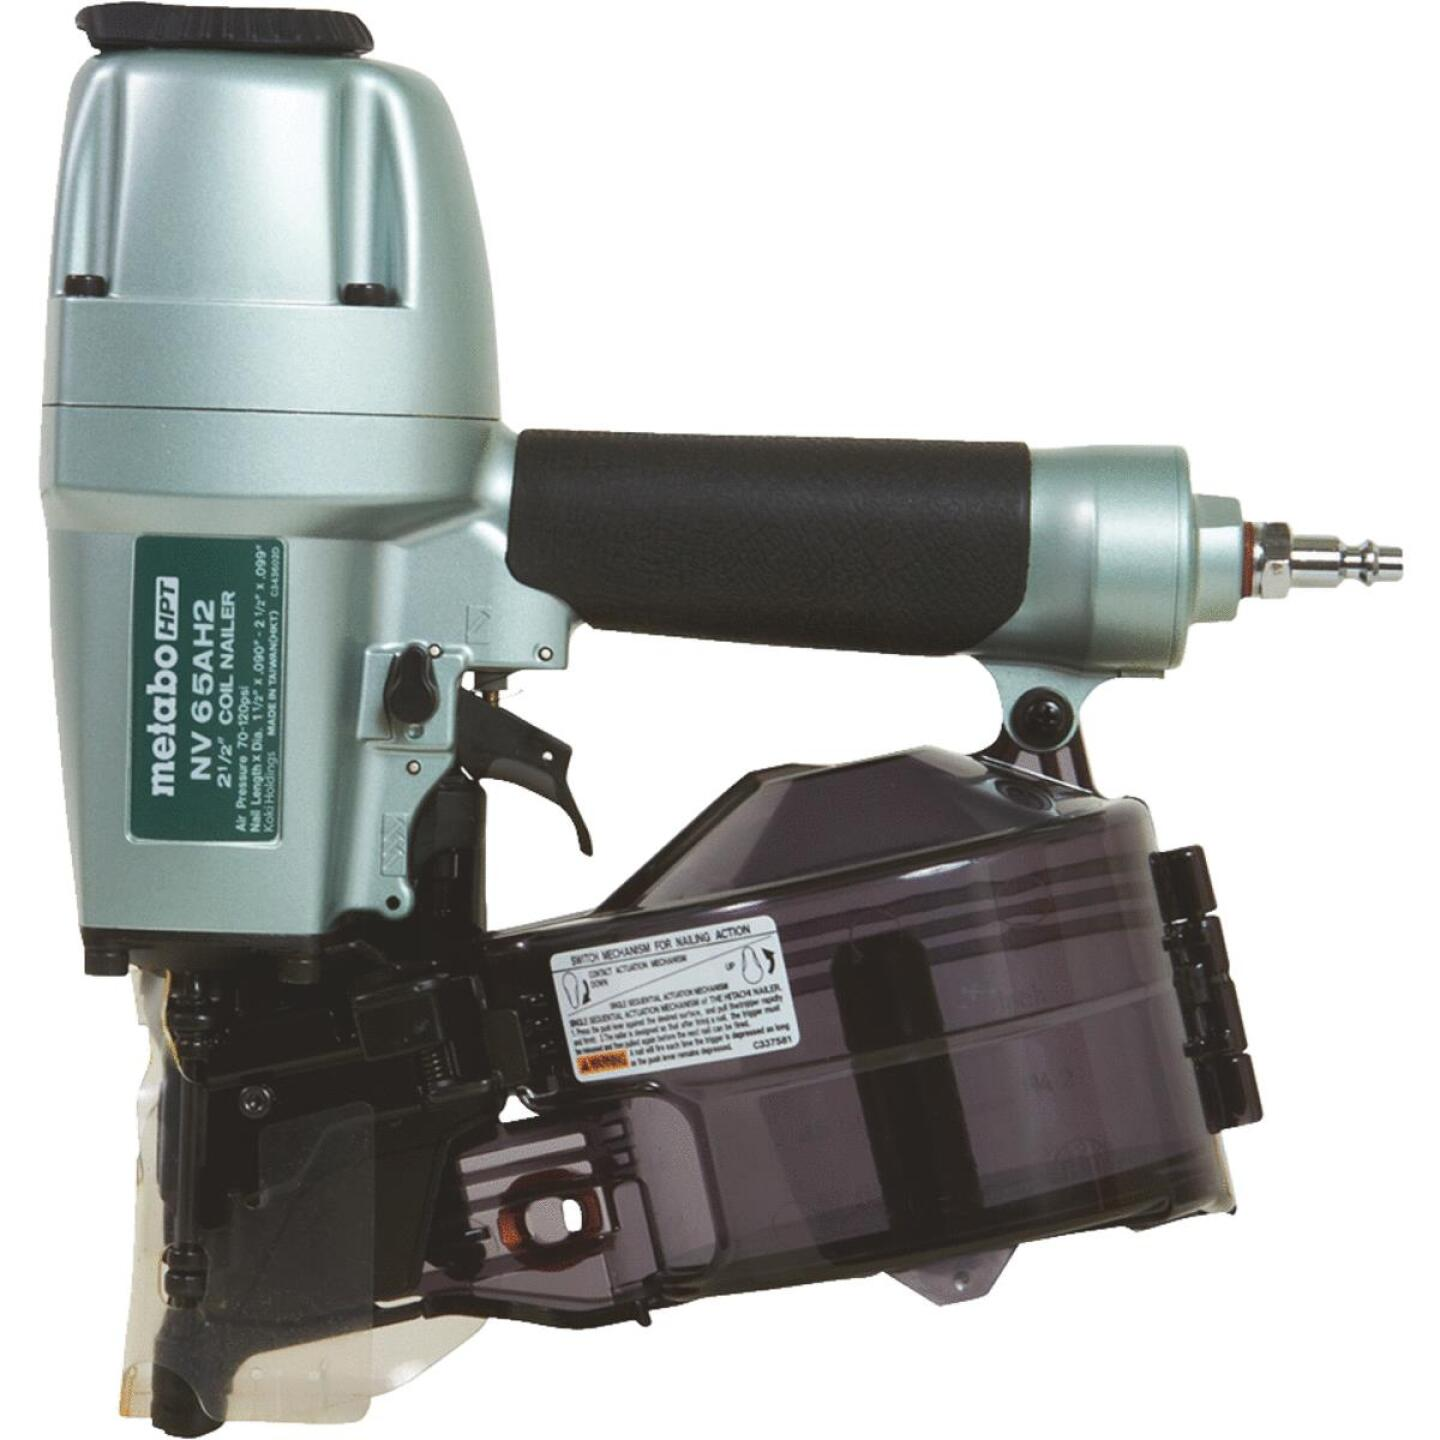 Metabo 16 Degree 2-1/2 In. Coil Siding Nailer Image 1